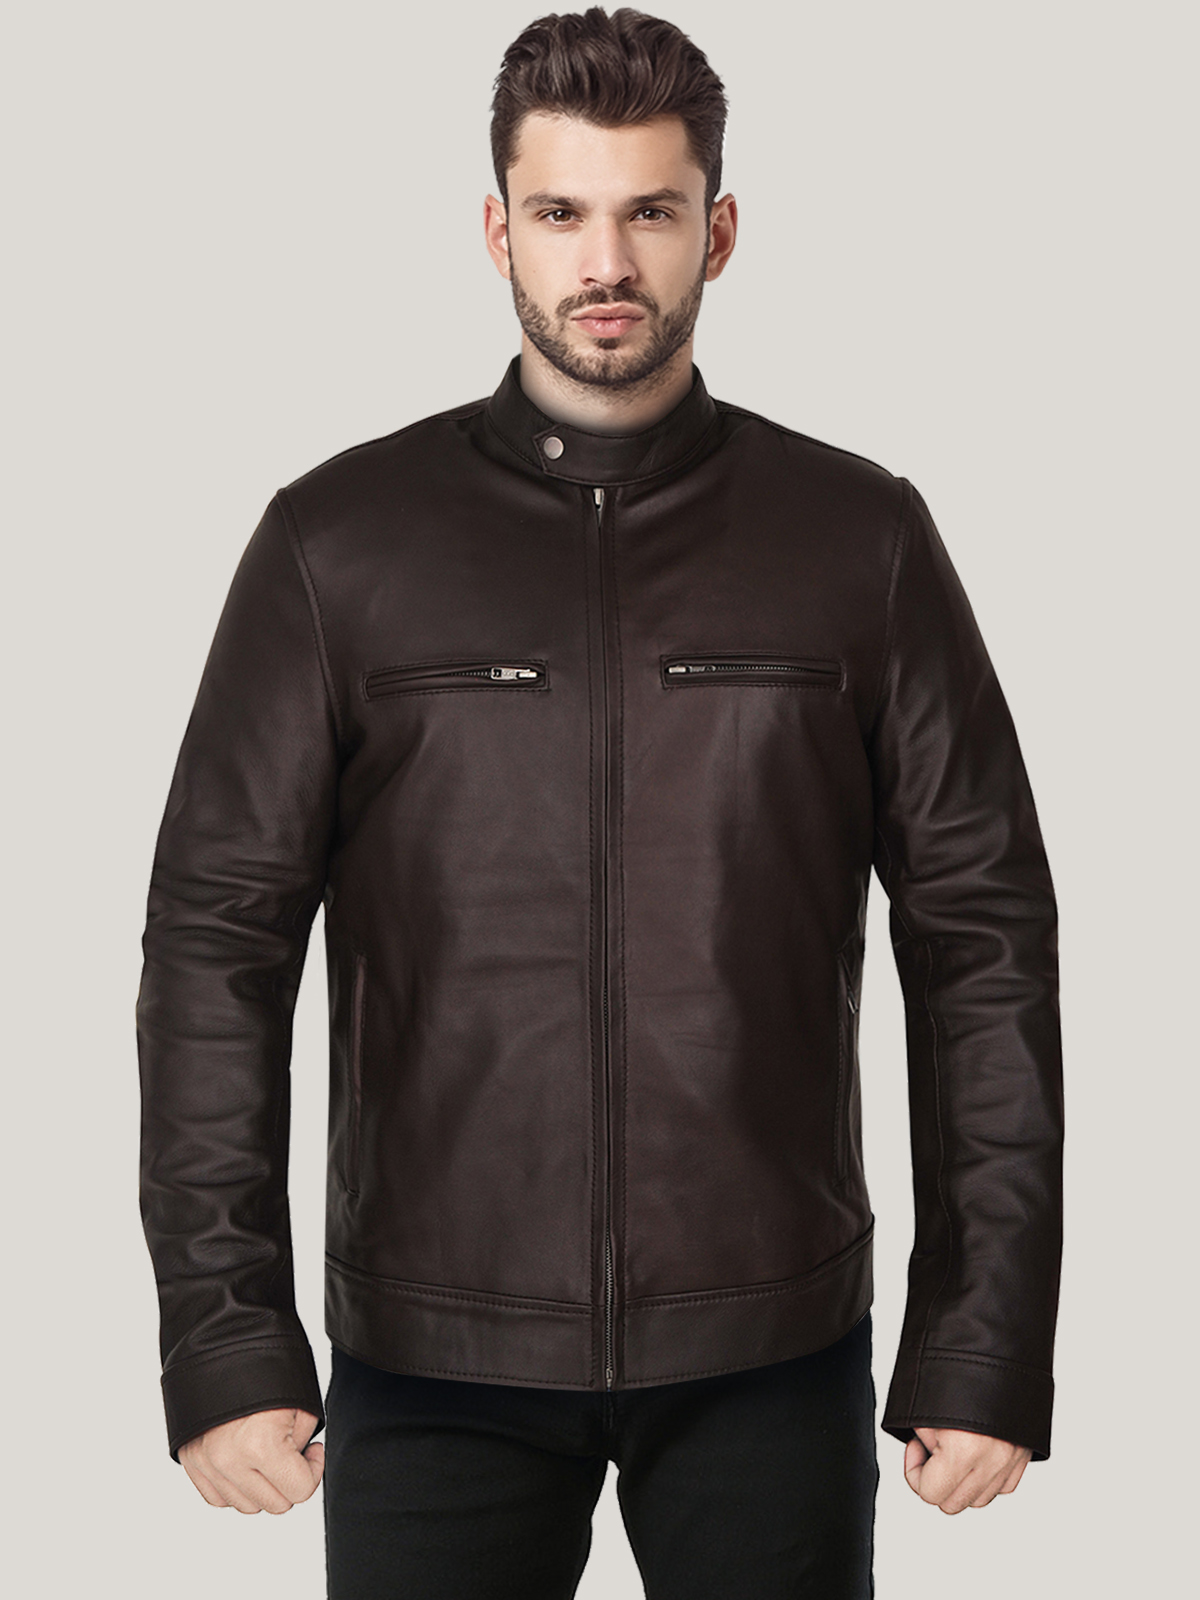 Mens-Charming-Dark-Brown-Leather-Jackett